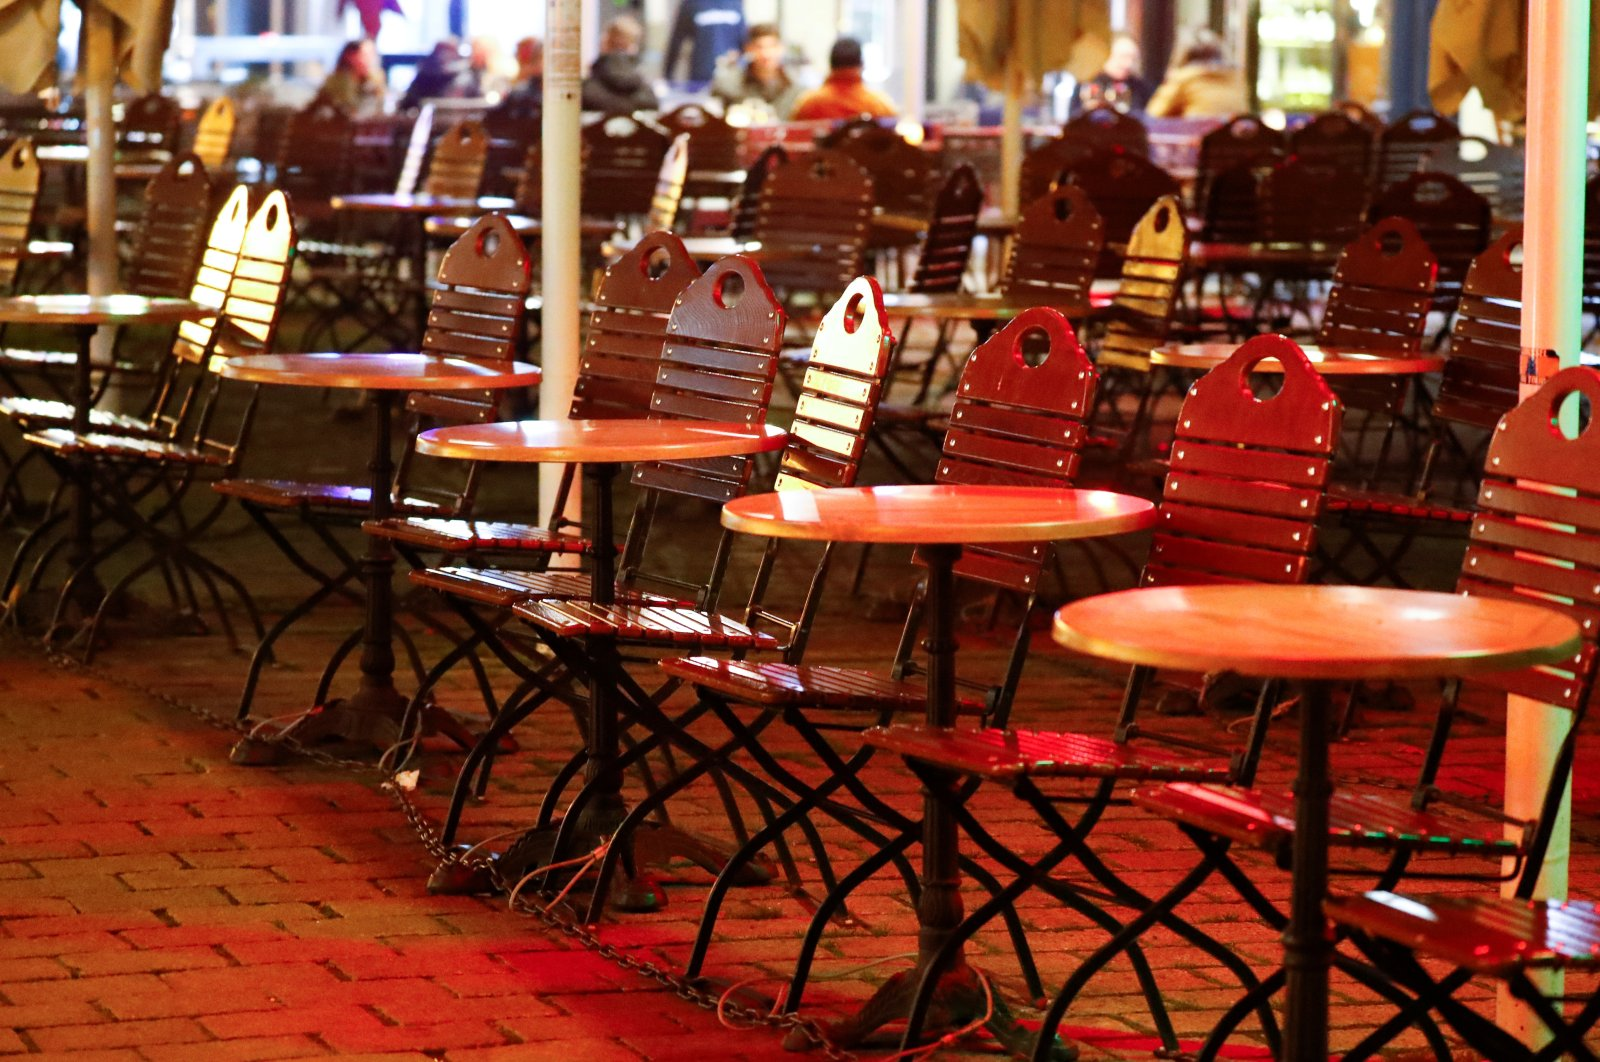 Empty tables of a restaurant are pictured as the coronavirus disease (COVID-19) outbreak continues, in Berlin's Mitte district, Germany, Oct. 28, 2020. (Reuters Photo)